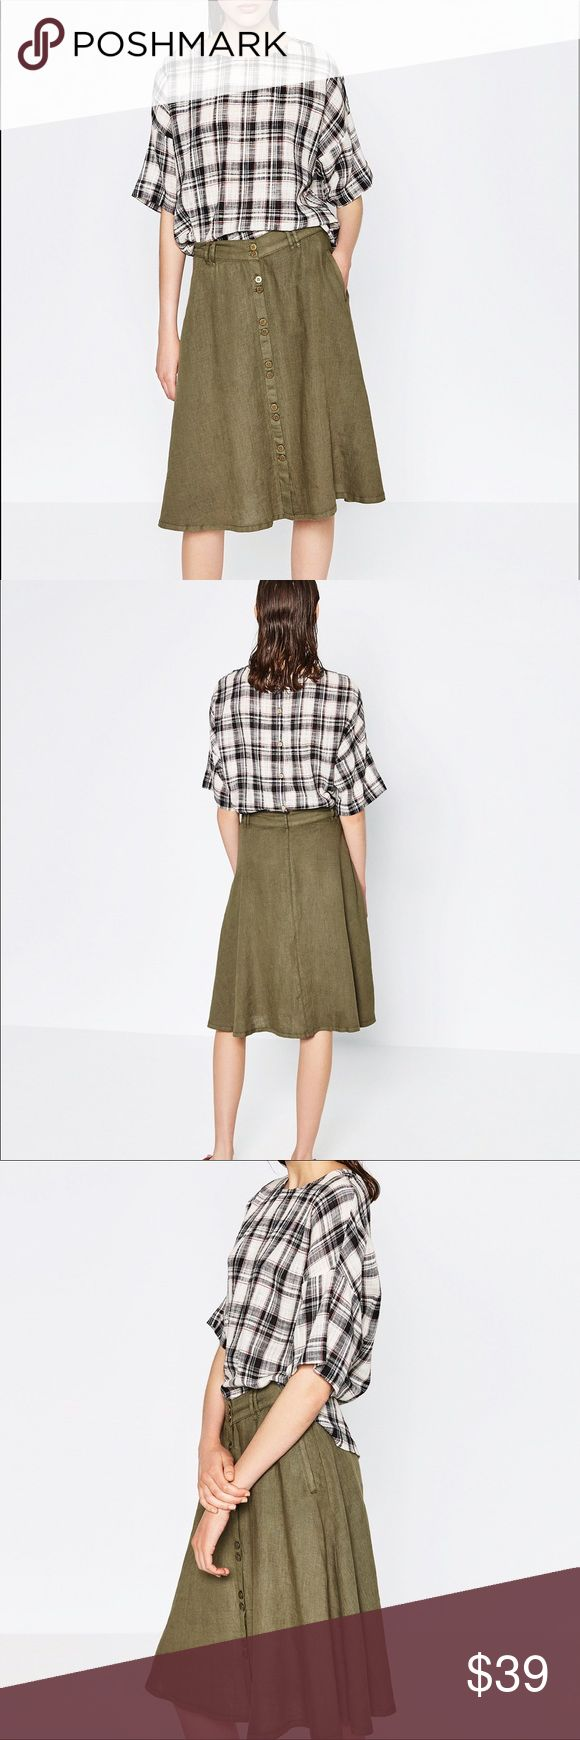 Zara linen skirt with front buttons Khaki color... you'll be ready for safari adventure! Love loose structure of skirt Zara Skirts